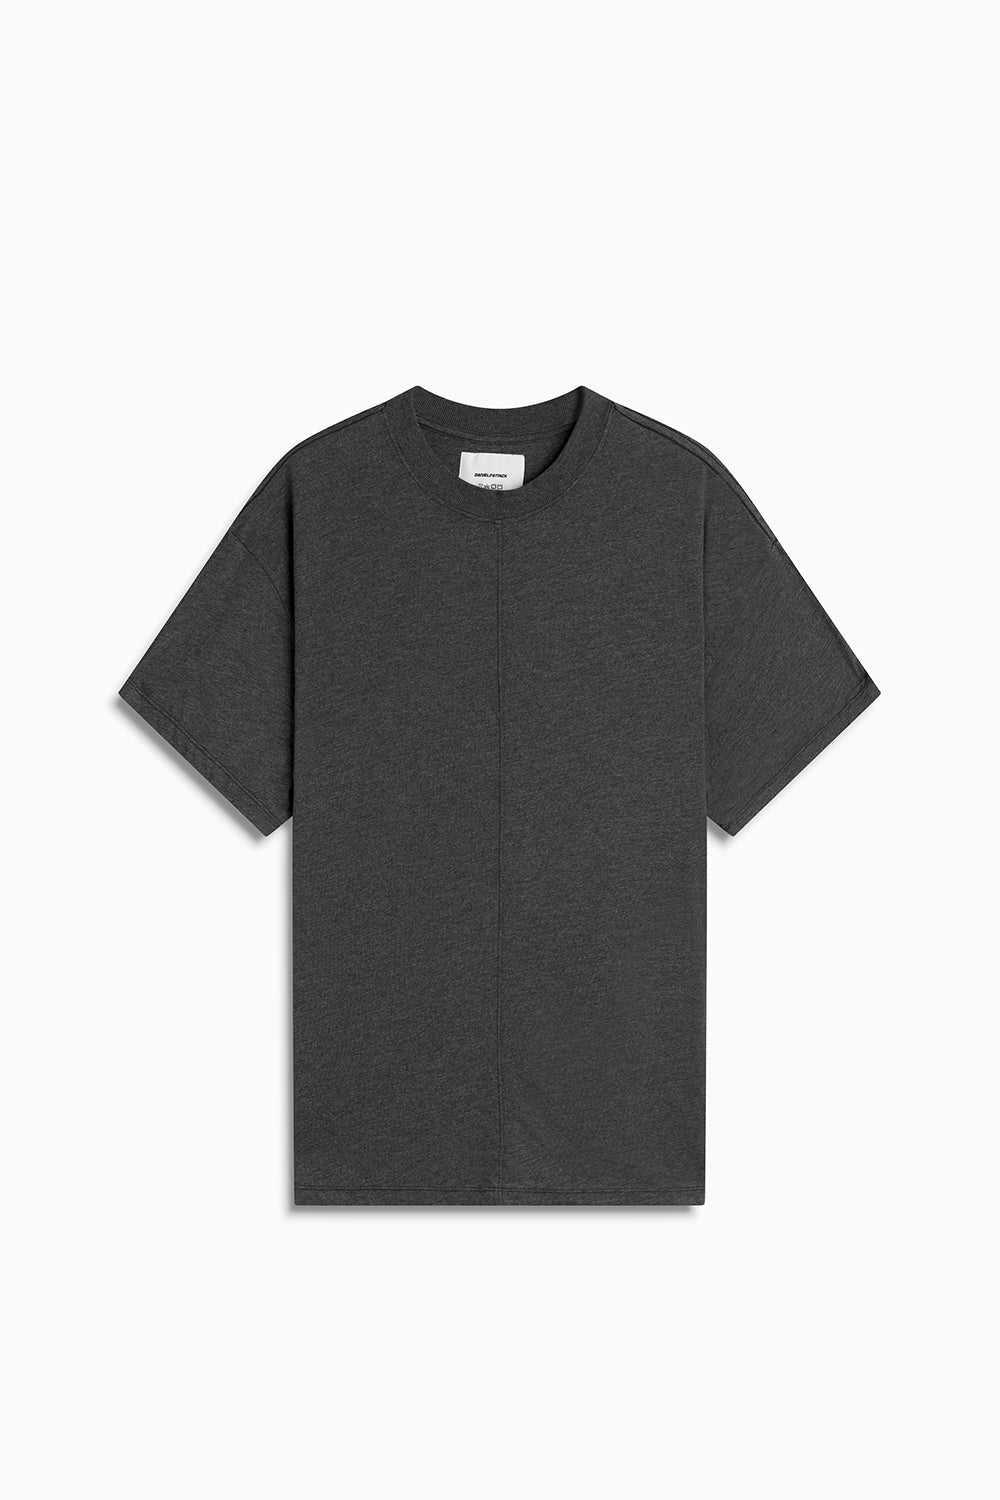 tri-blend standard tee / black heather